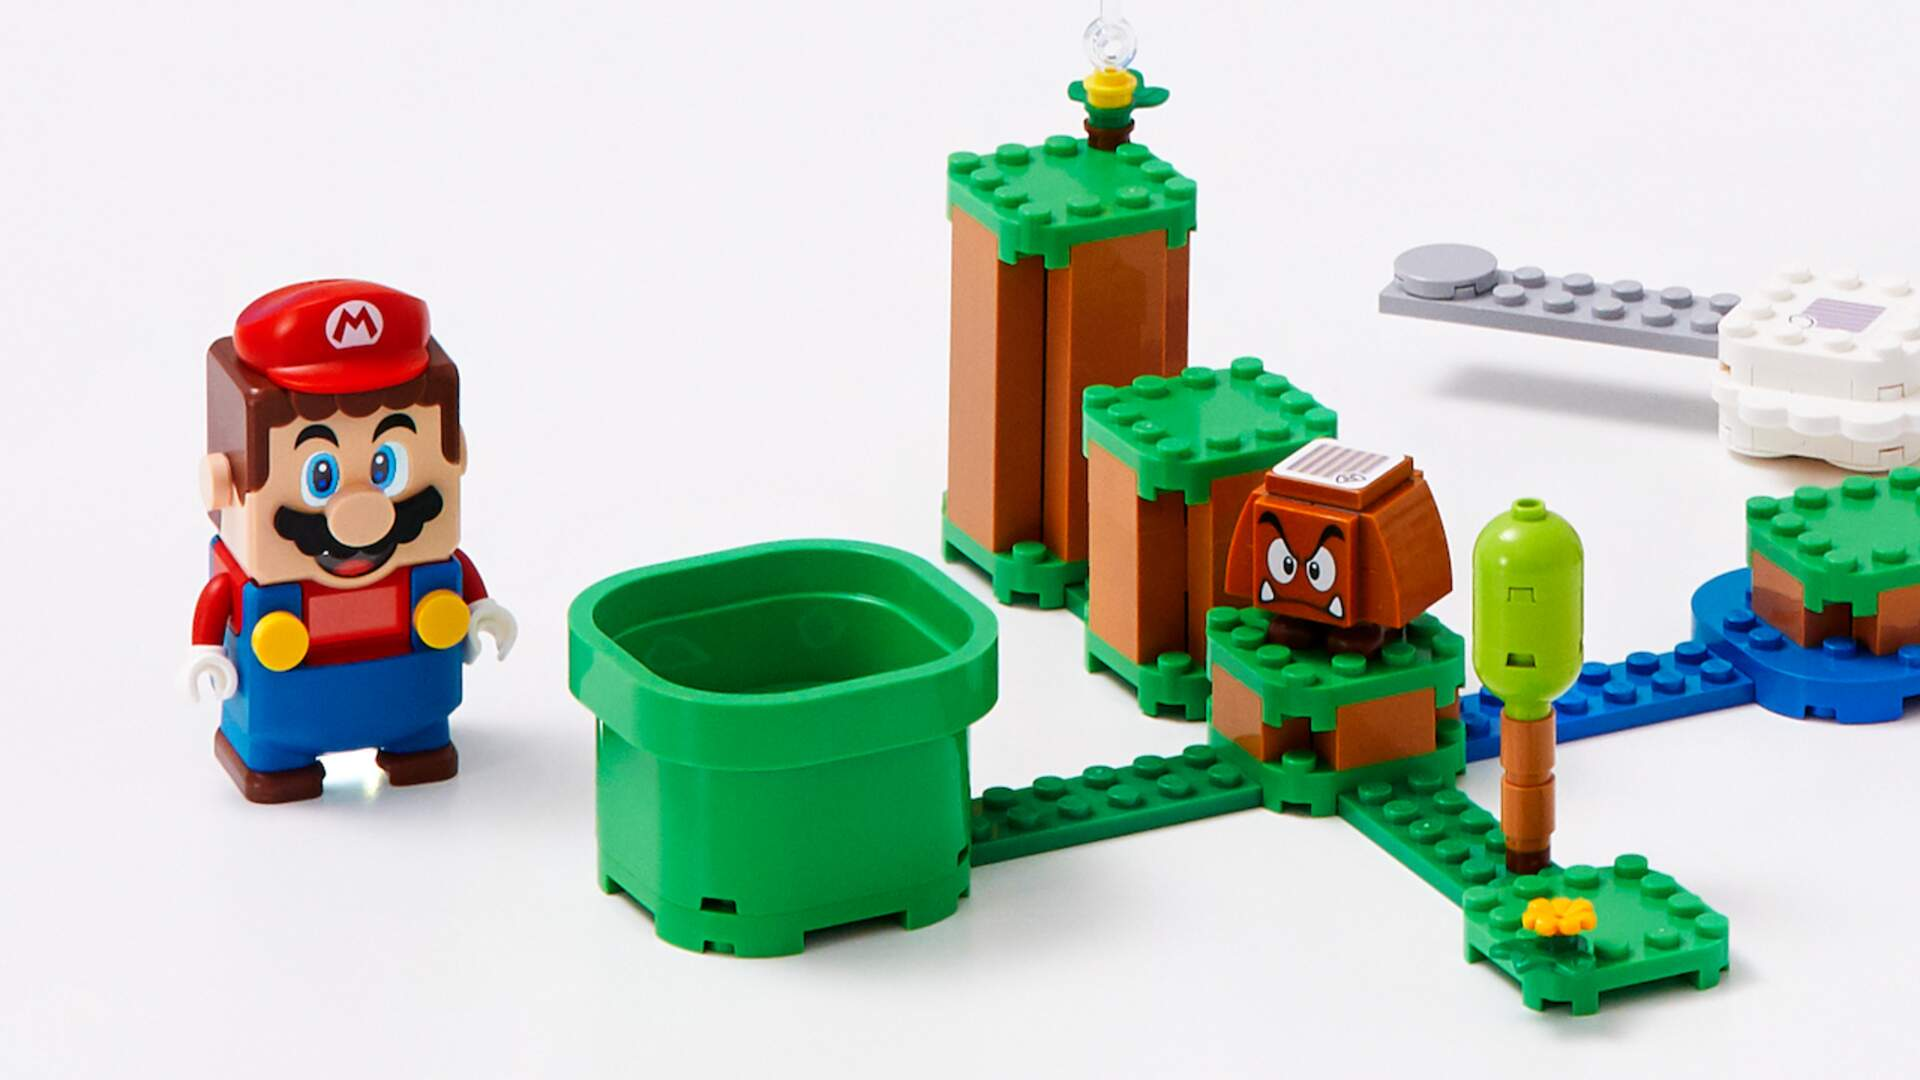 The Lego Mario Starter Set Will Cost the Same as a Full Price Mario Game